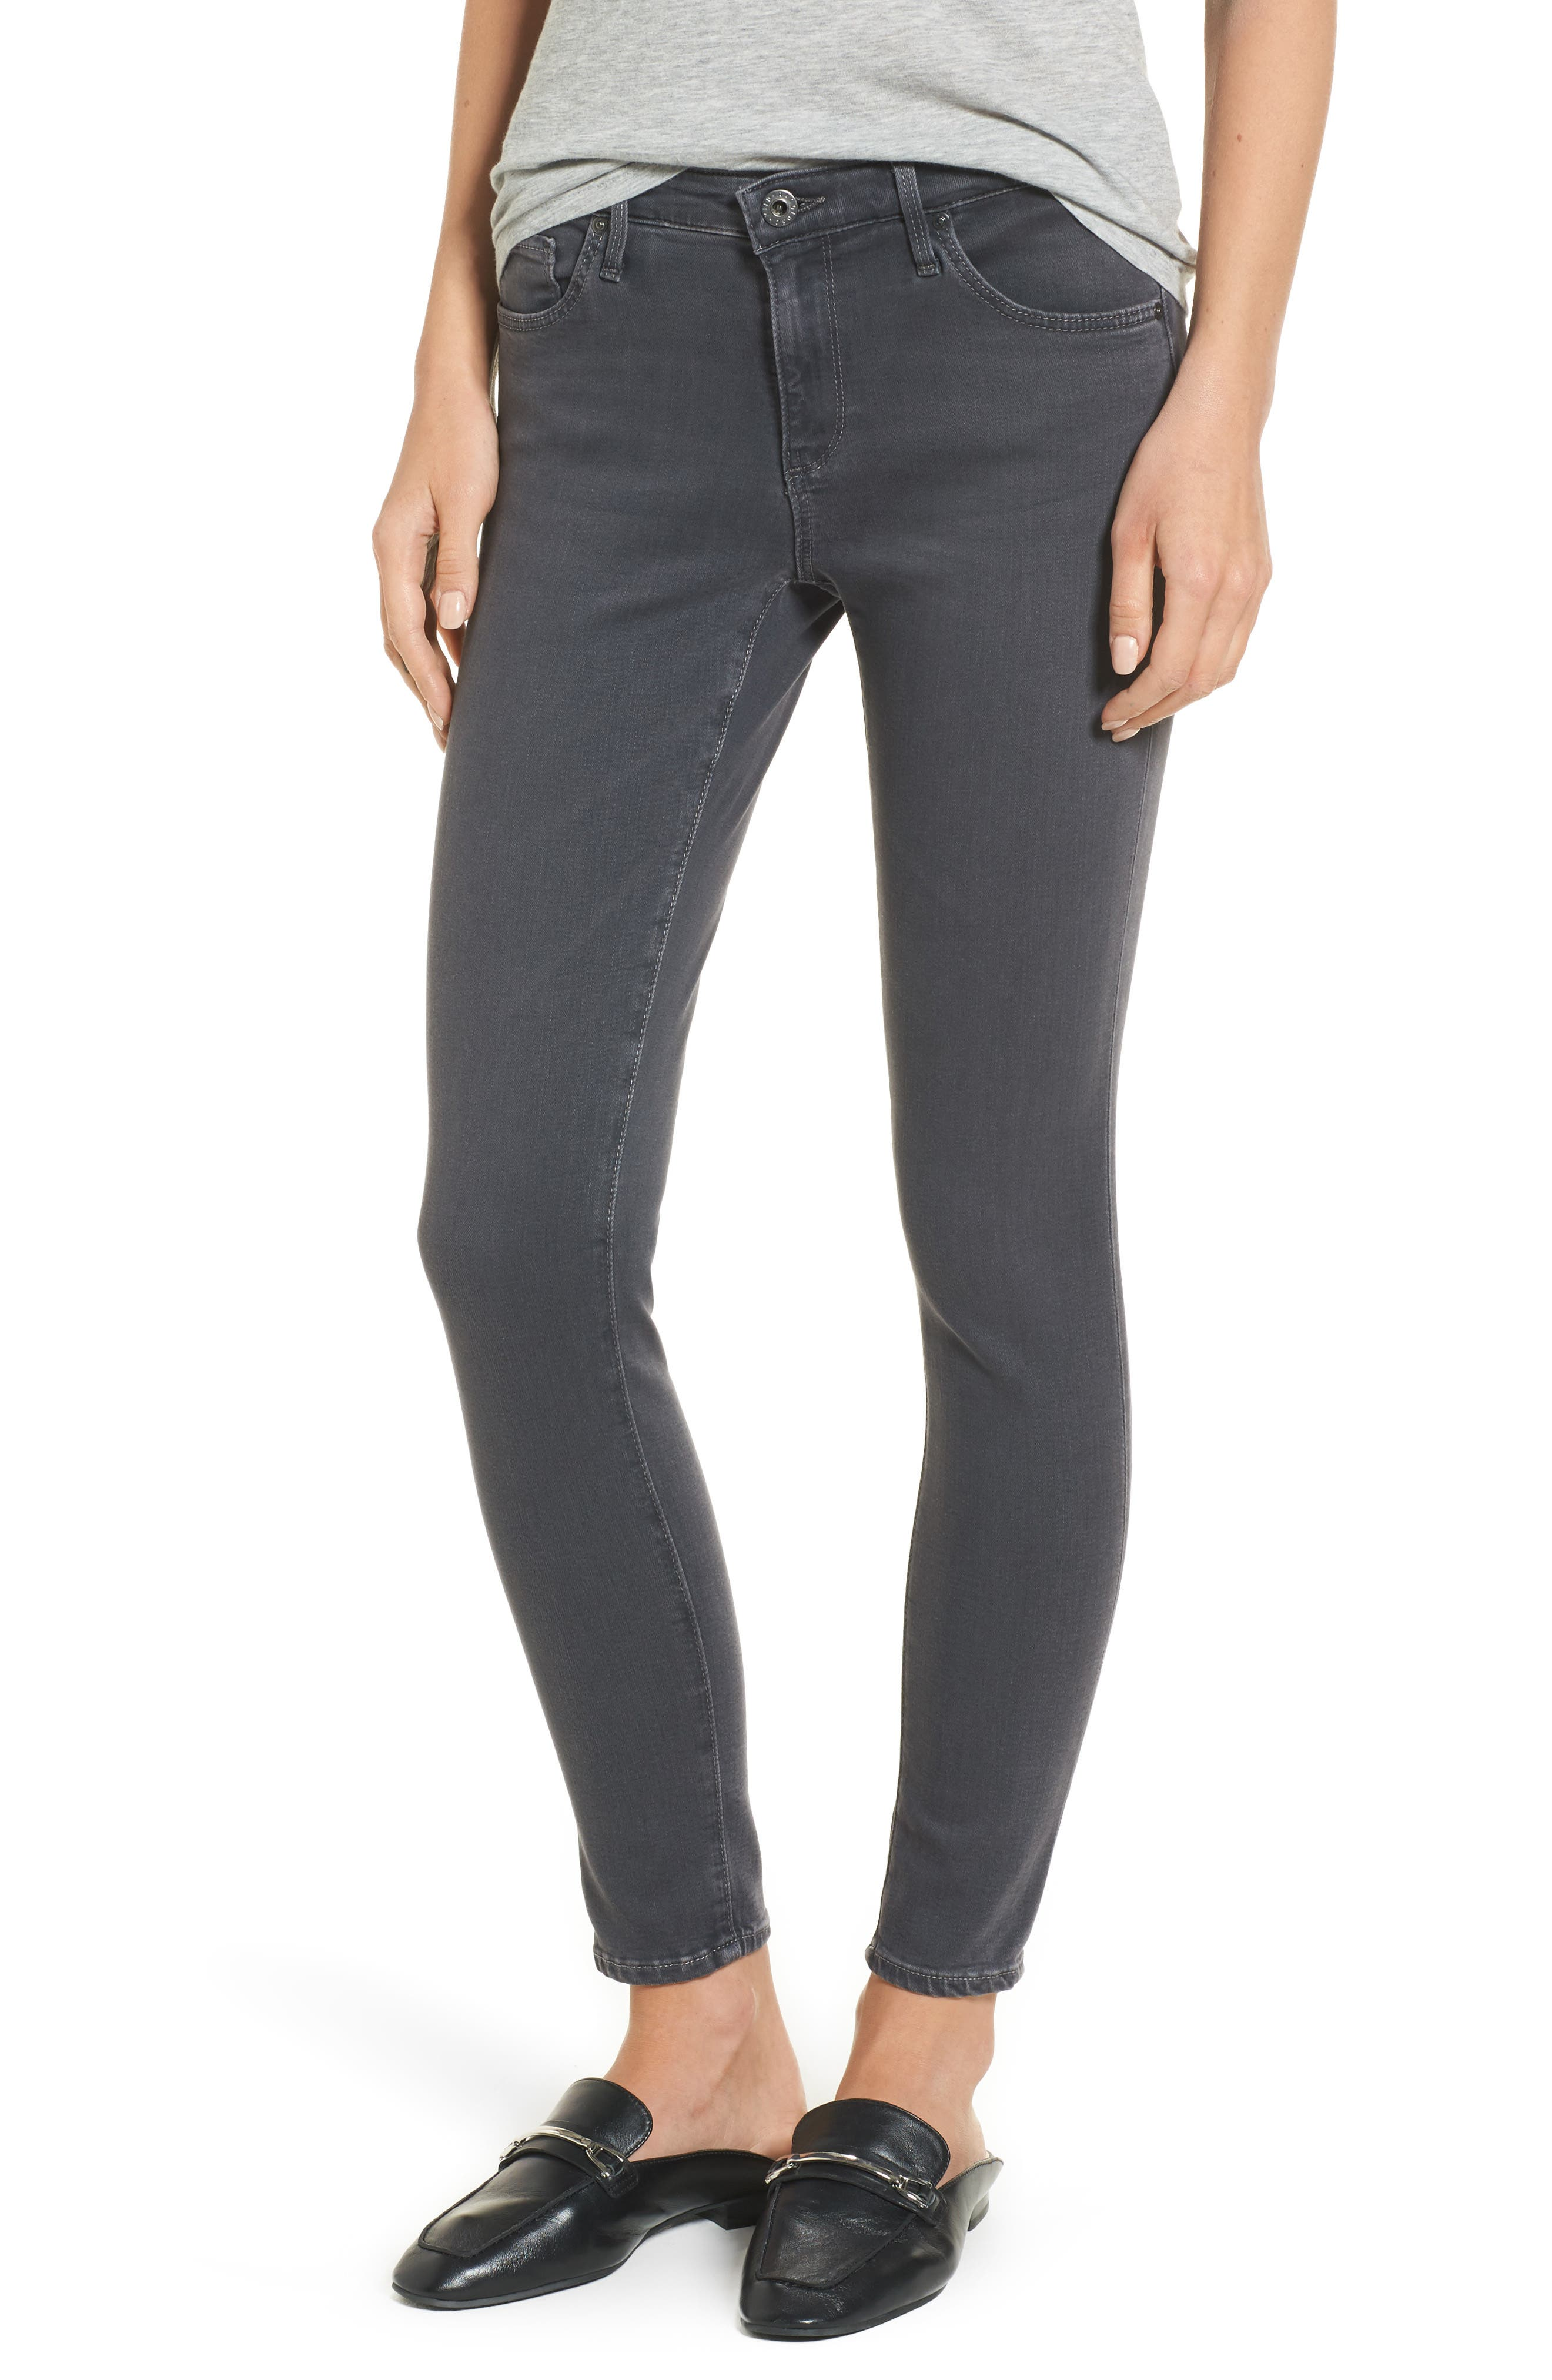 Ankle 'The Legging' Super Skinny Jeans,                         Main,                         color, RAVEN PLUME